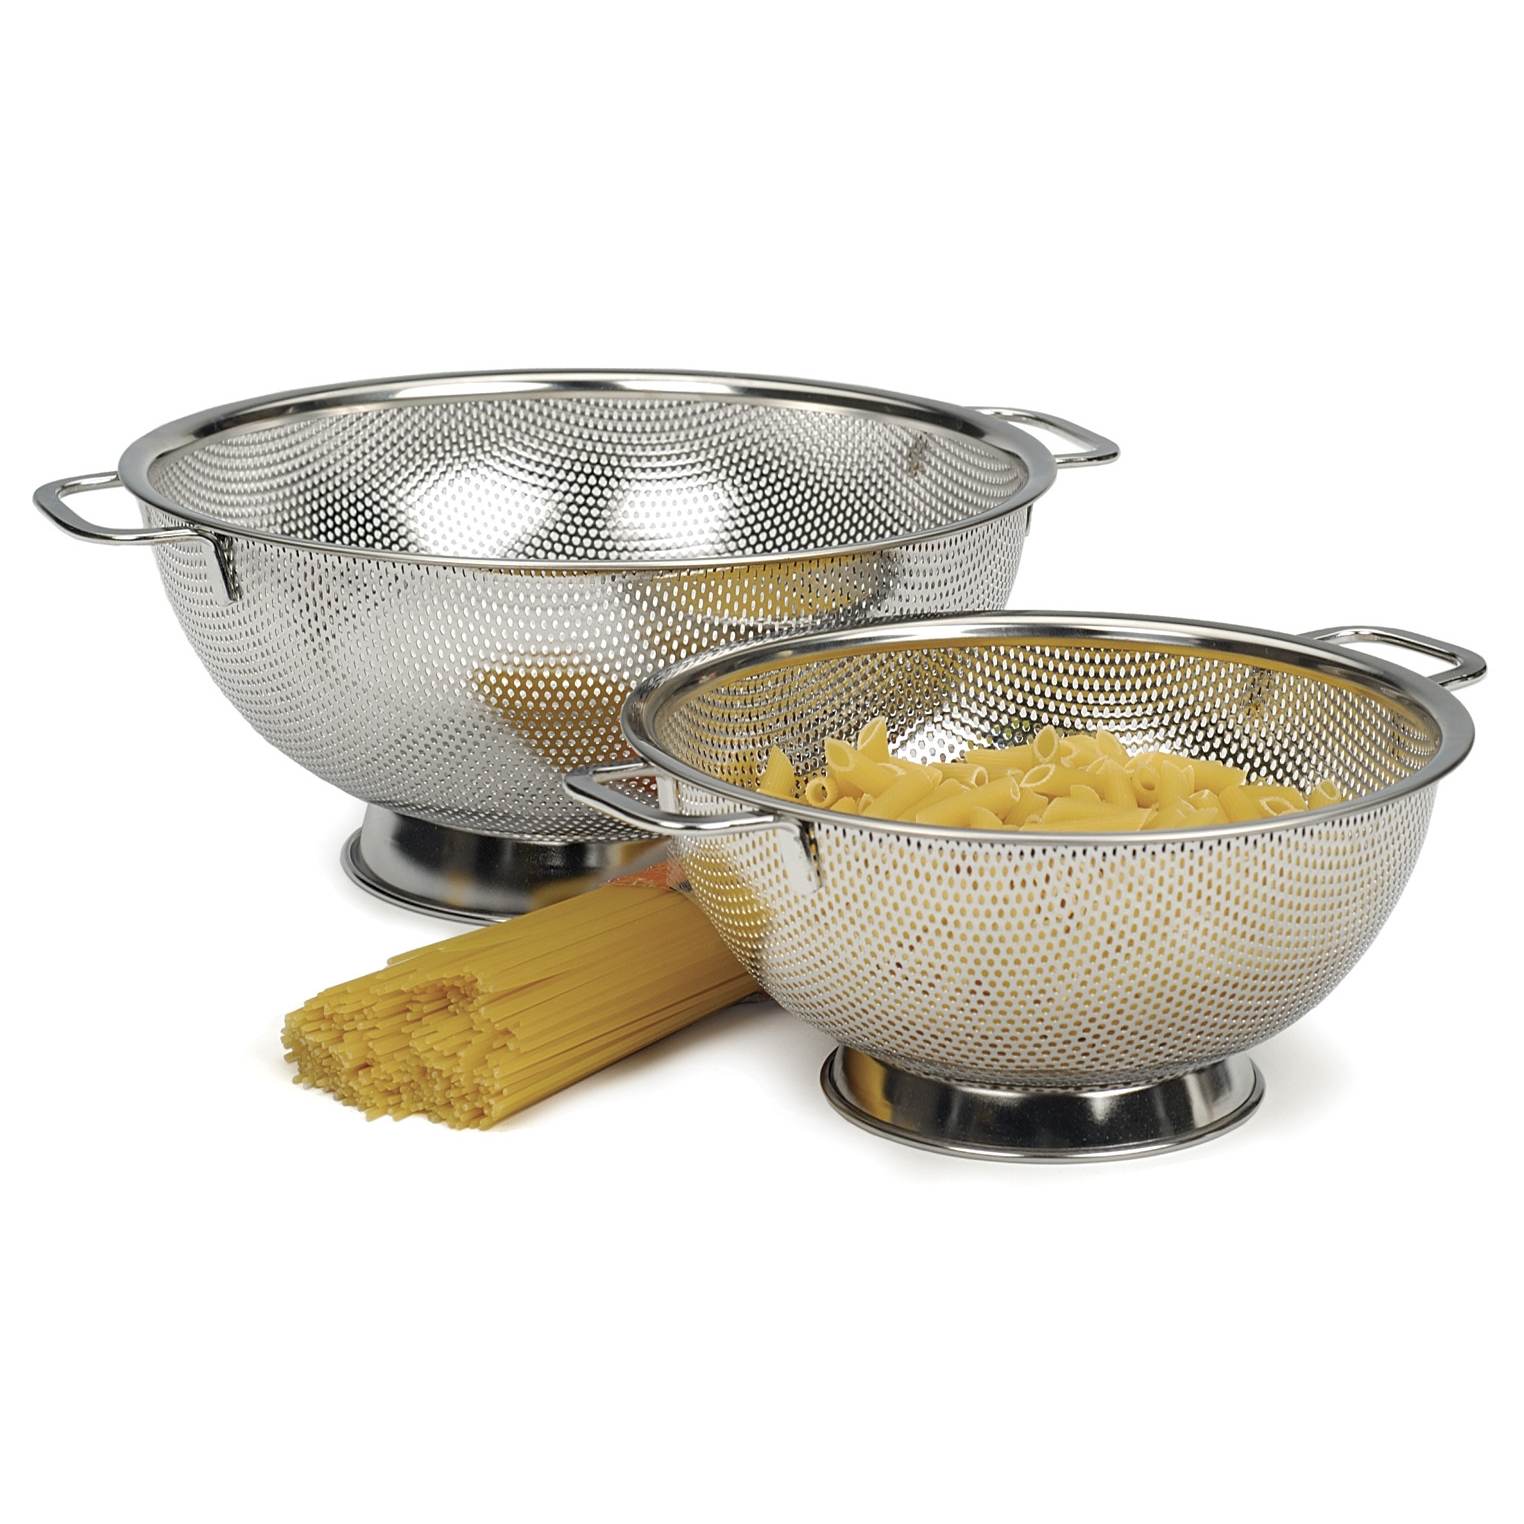 Endurance Precision Pierced Stainless Steel Colander 5 Quart